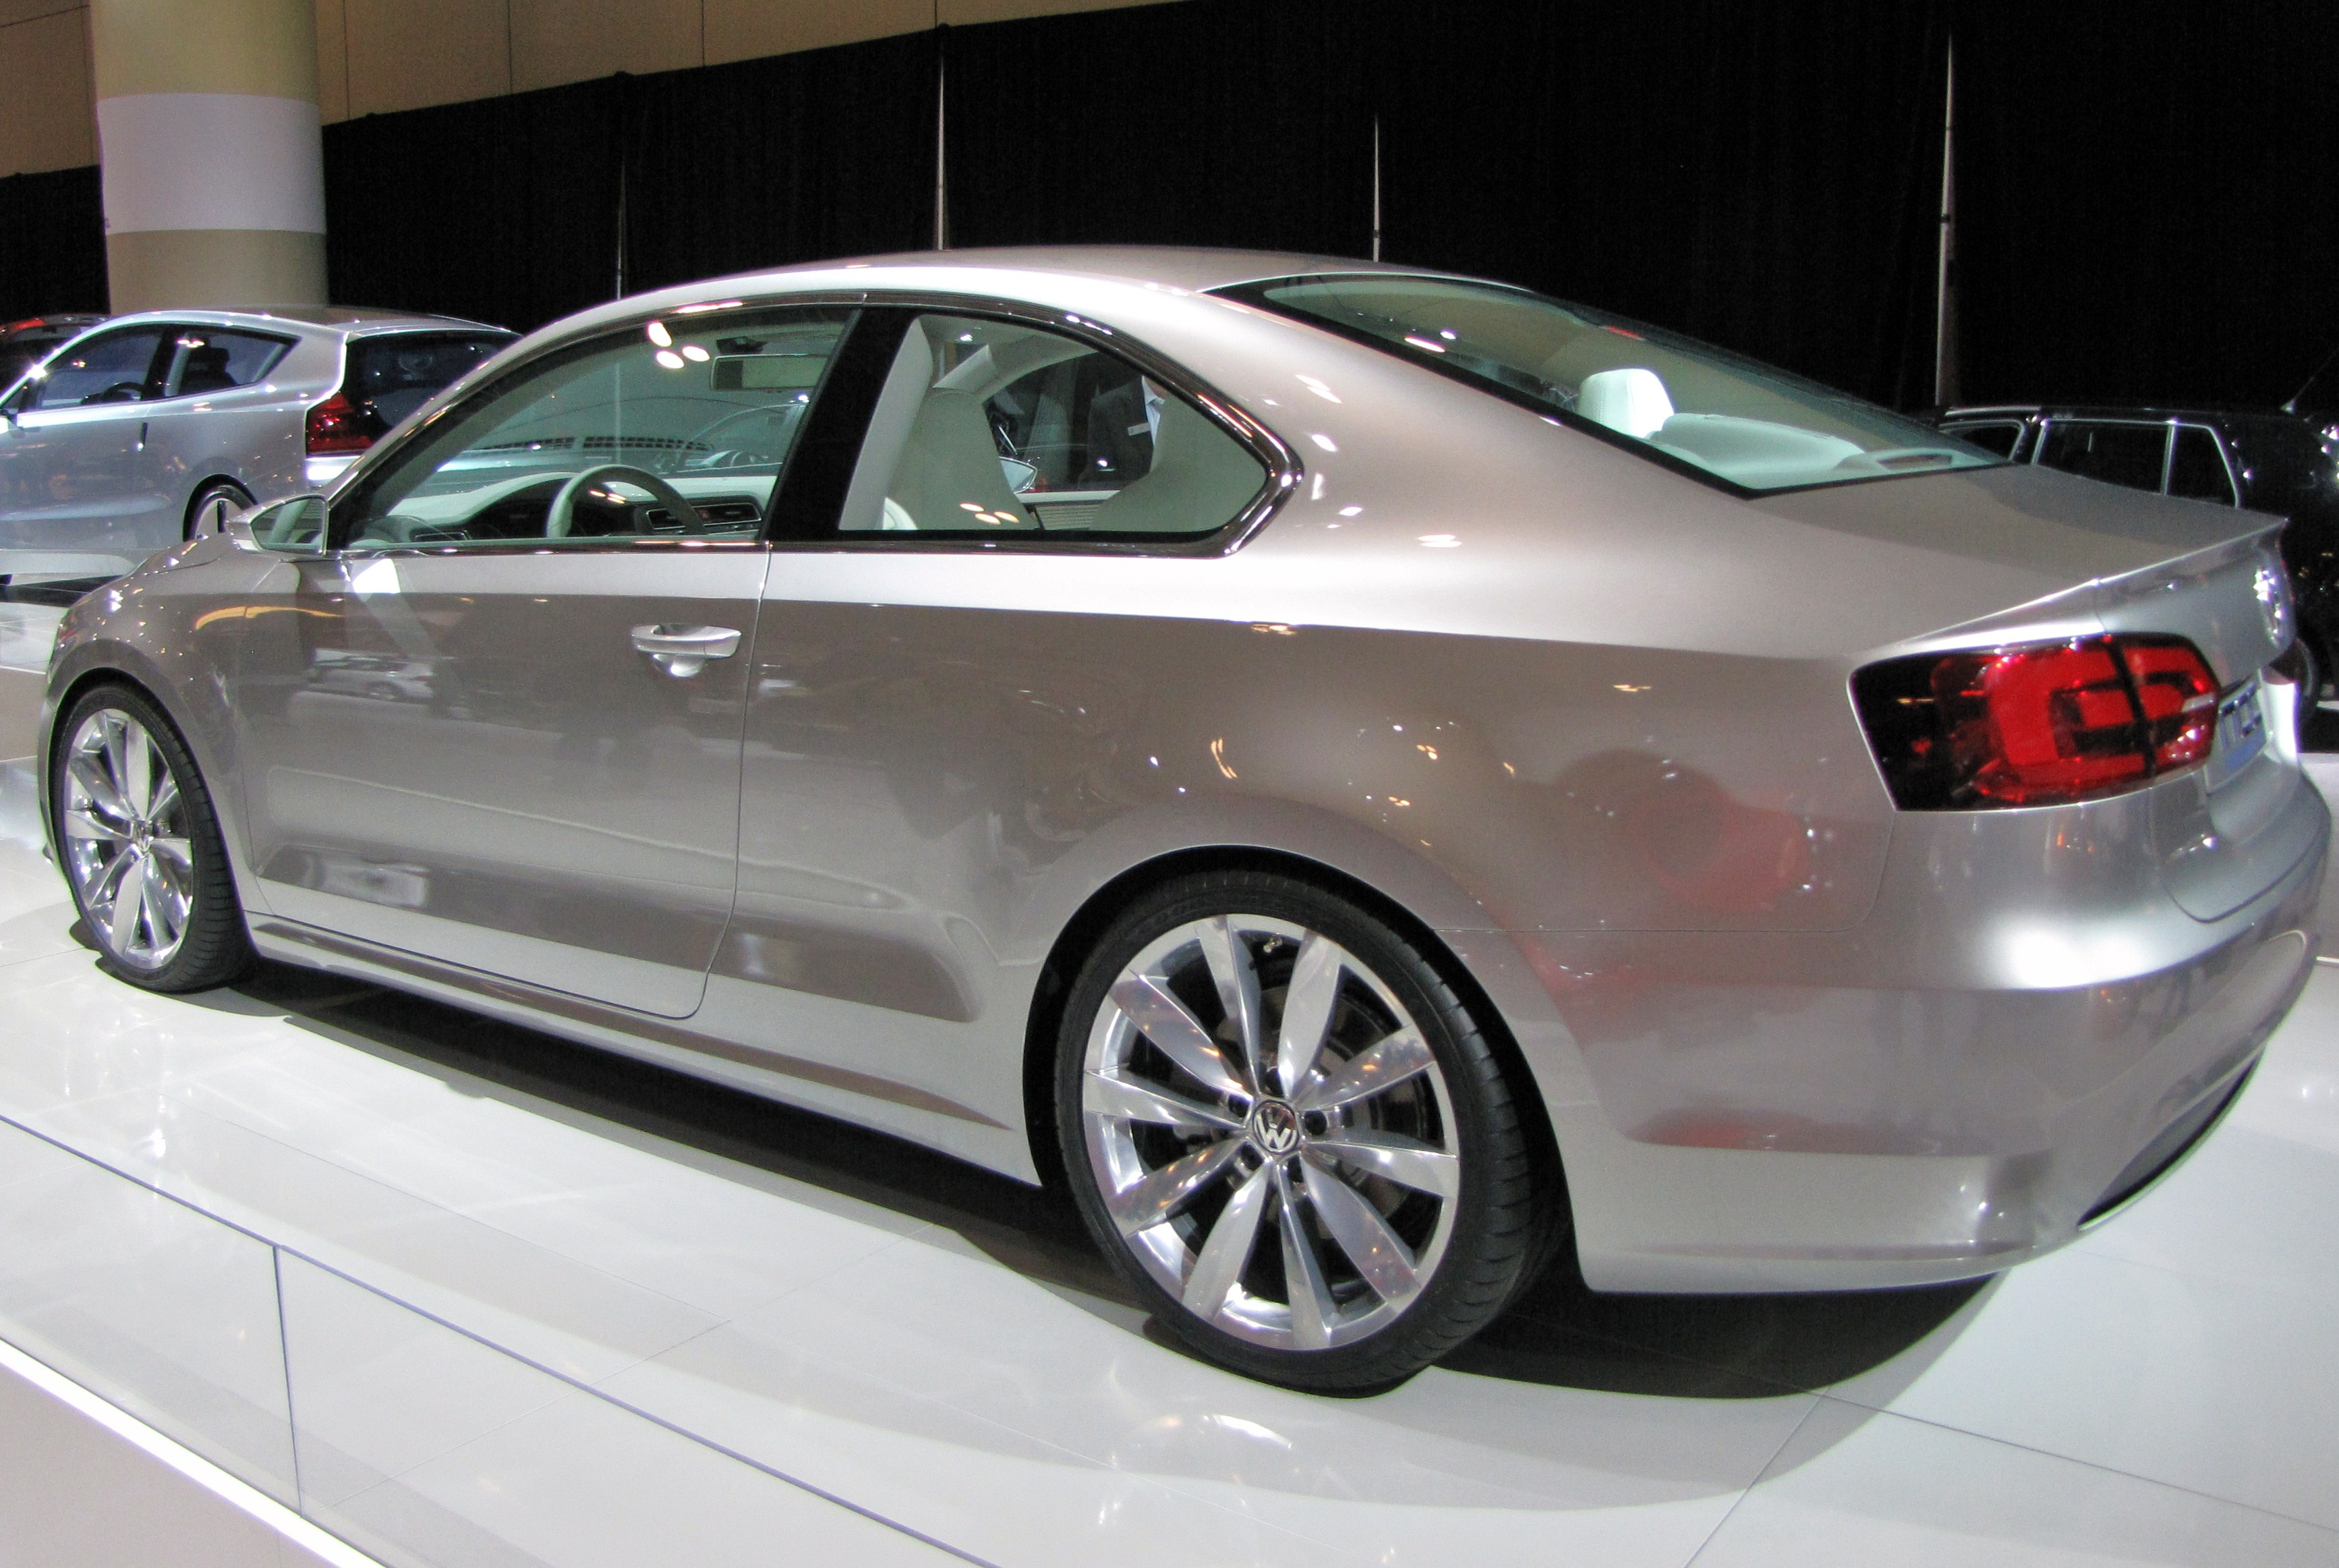 File:VW New Compact Coupé Heck.jpg - Wikimedia Commons